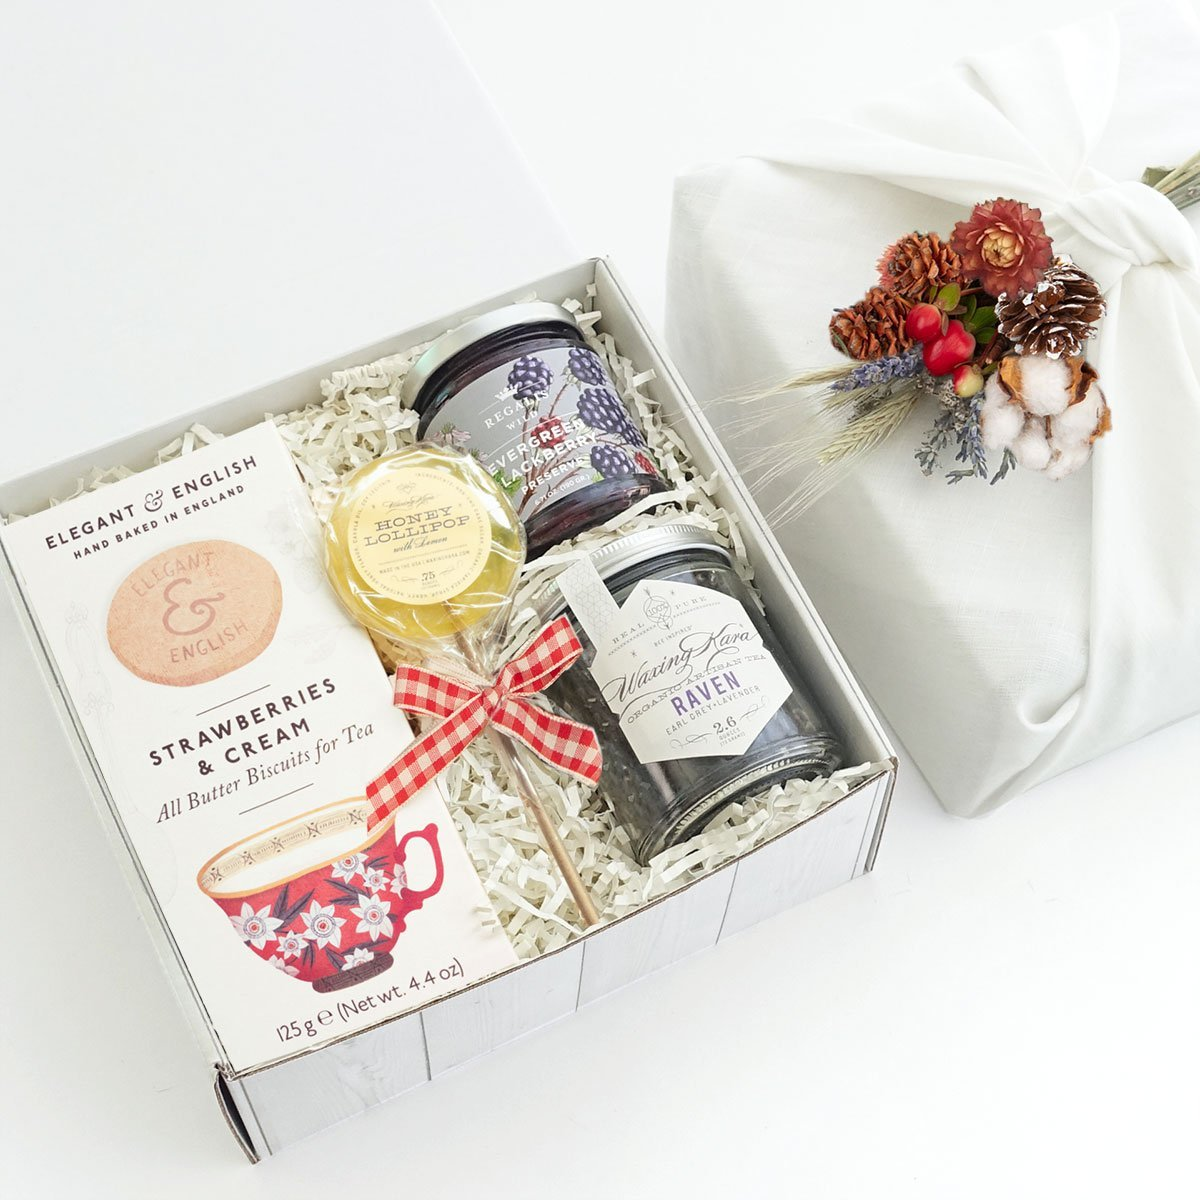 KADOO Thinking of You Care Package Gift Box wrapped in Furoshiki style with white French linen and bouquet of dry flowers. Featuring Strawberries Cream cookies, Evergreen Blackberry Jam, Earl Grey Tea and Honey Lollipops.